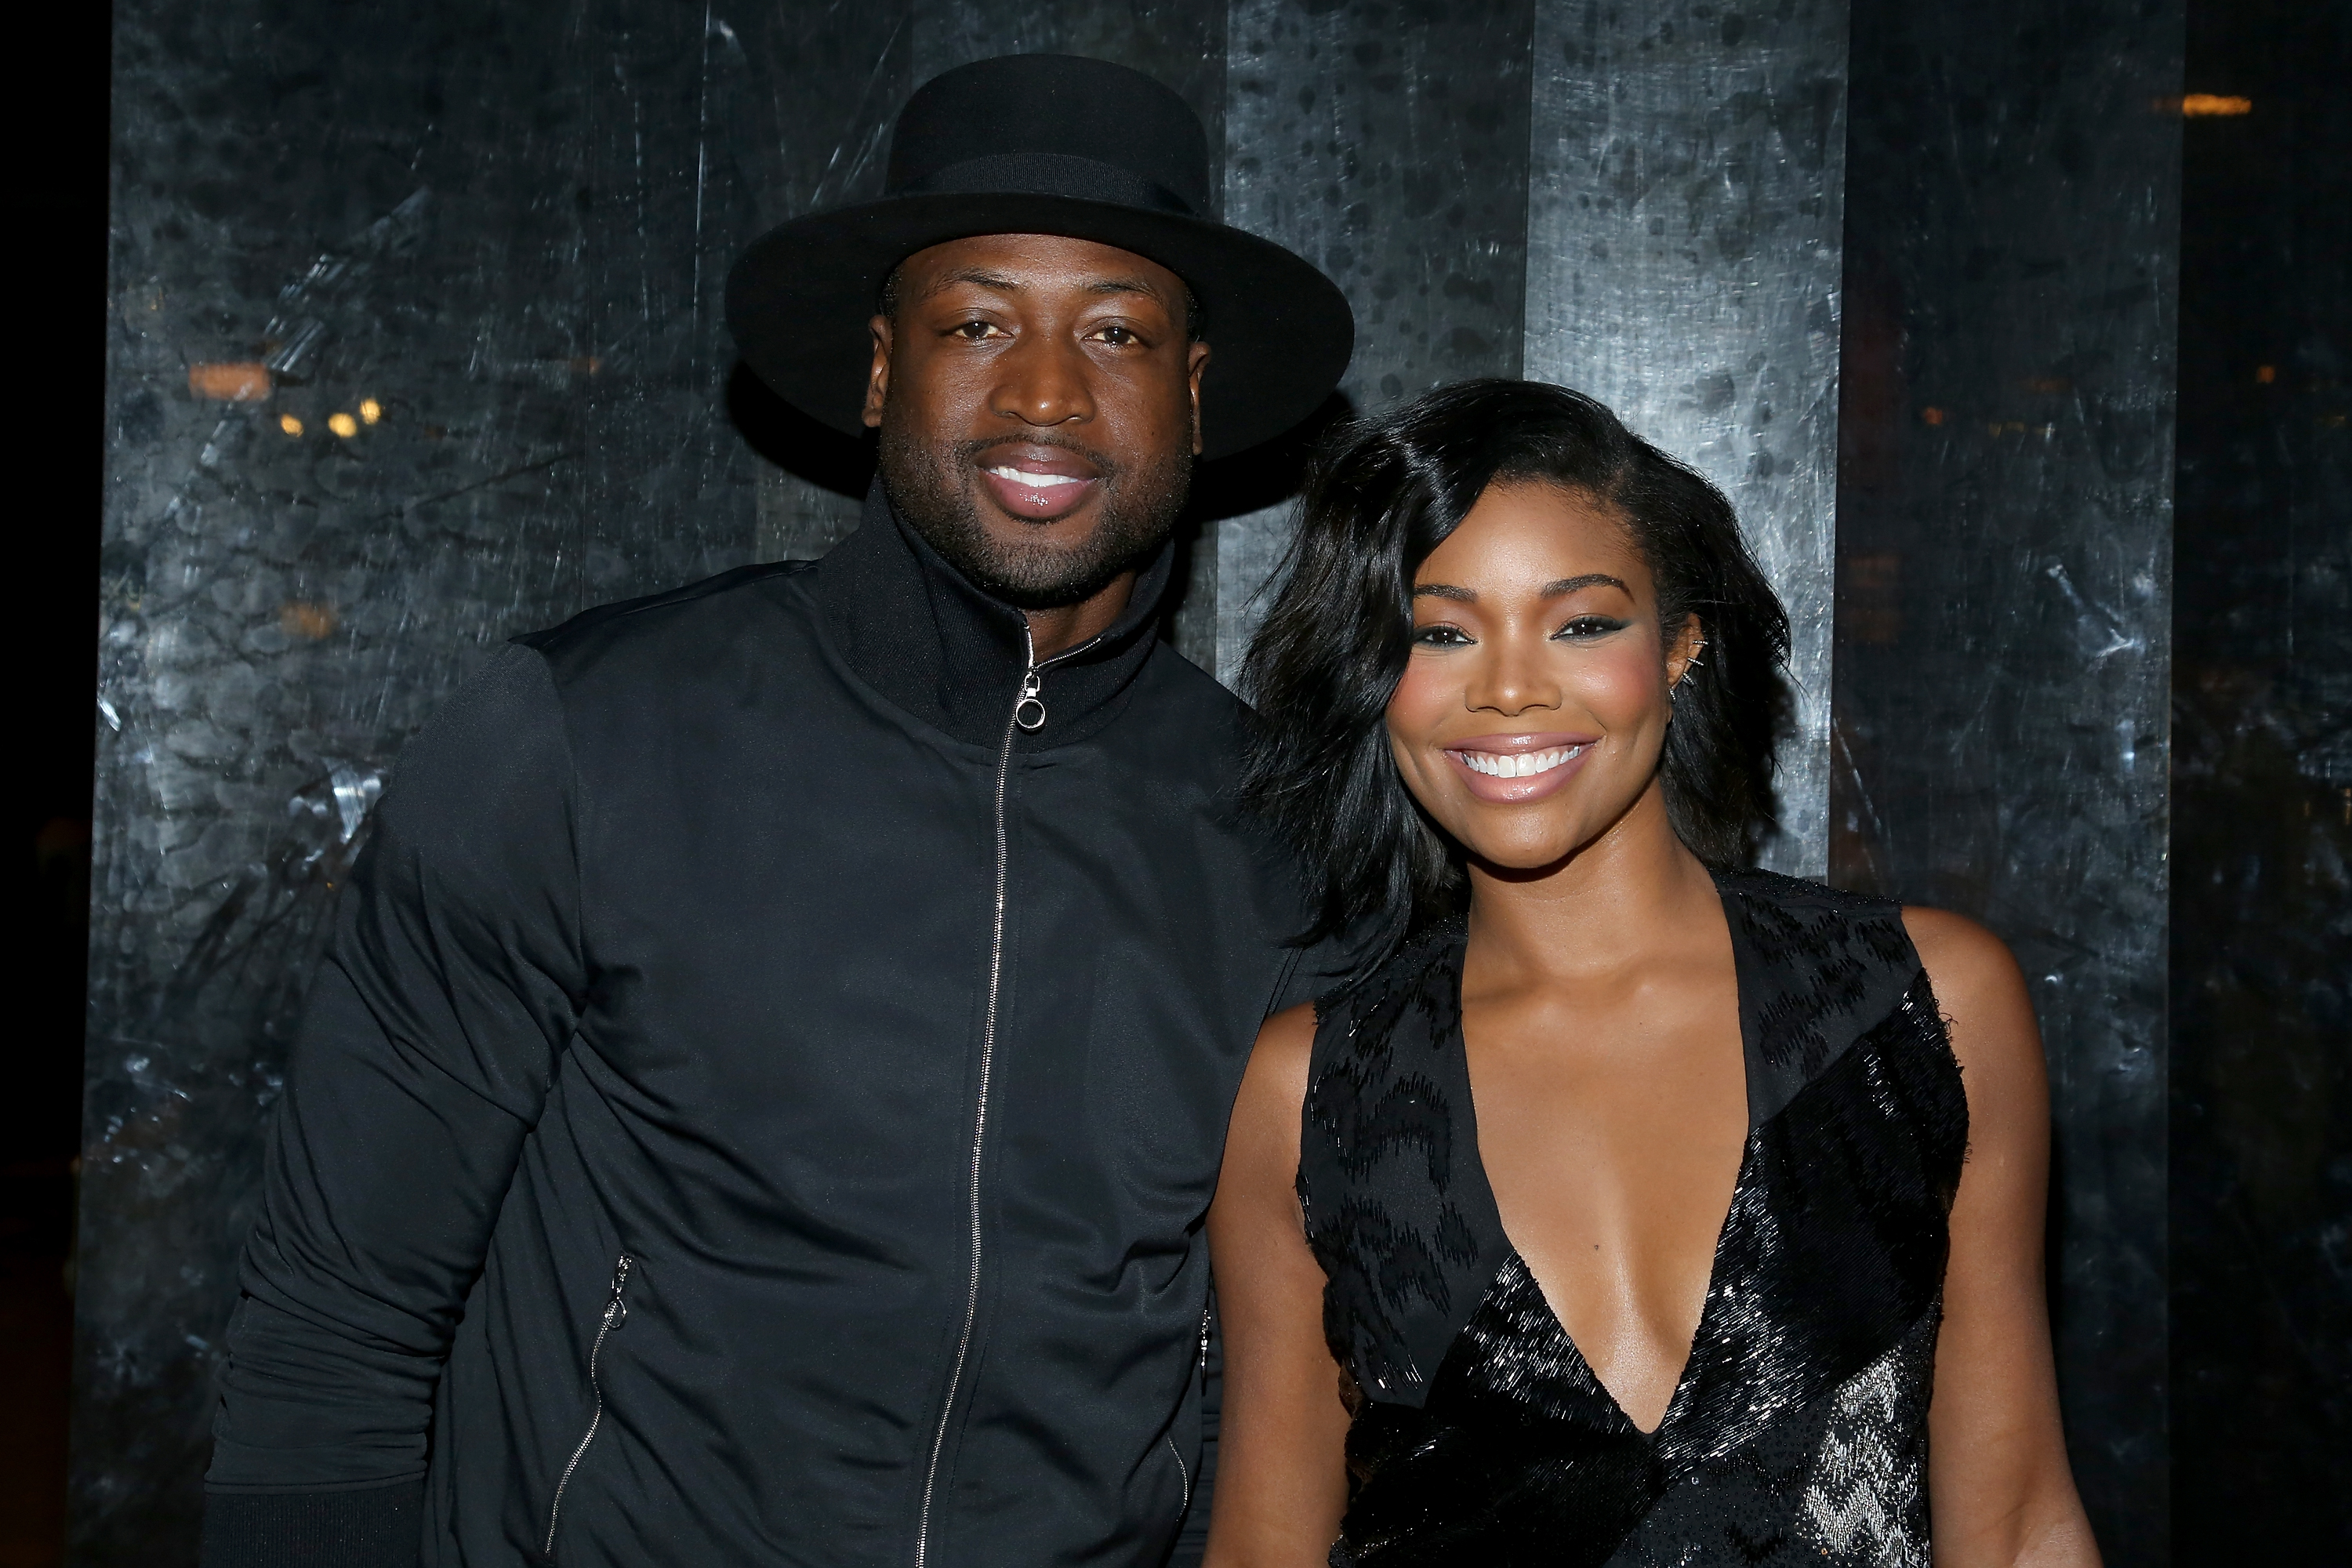 NBA Fans React To Dwyane Wade Saying He Wants To Open An Only Fans Account With His Wife Gabrielle Union